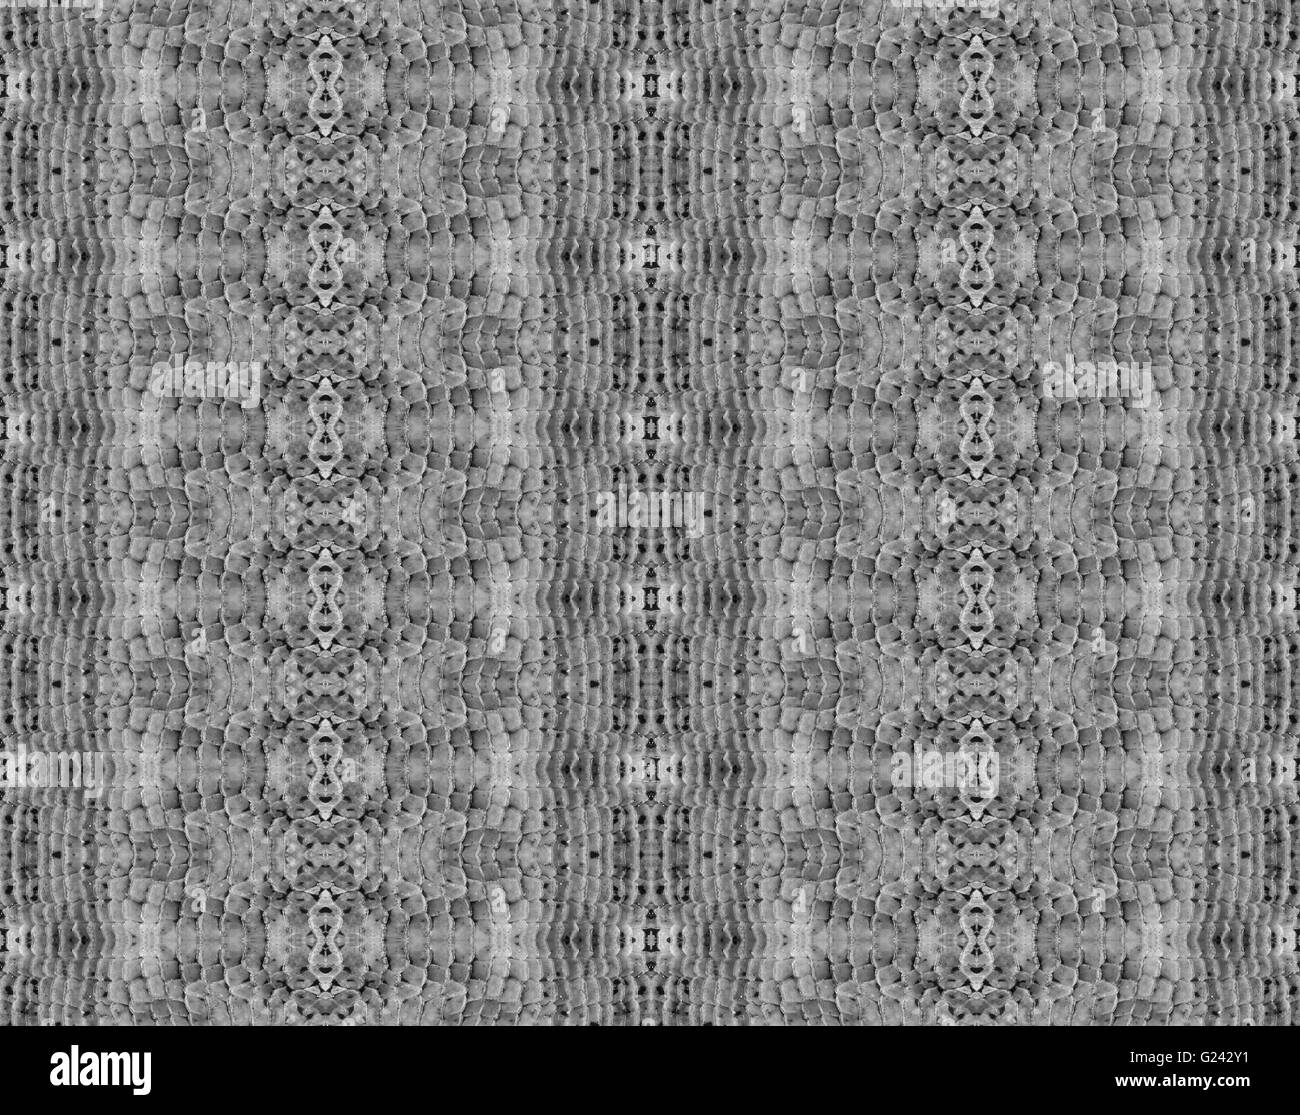 snake skin pattern for background - Stock Image